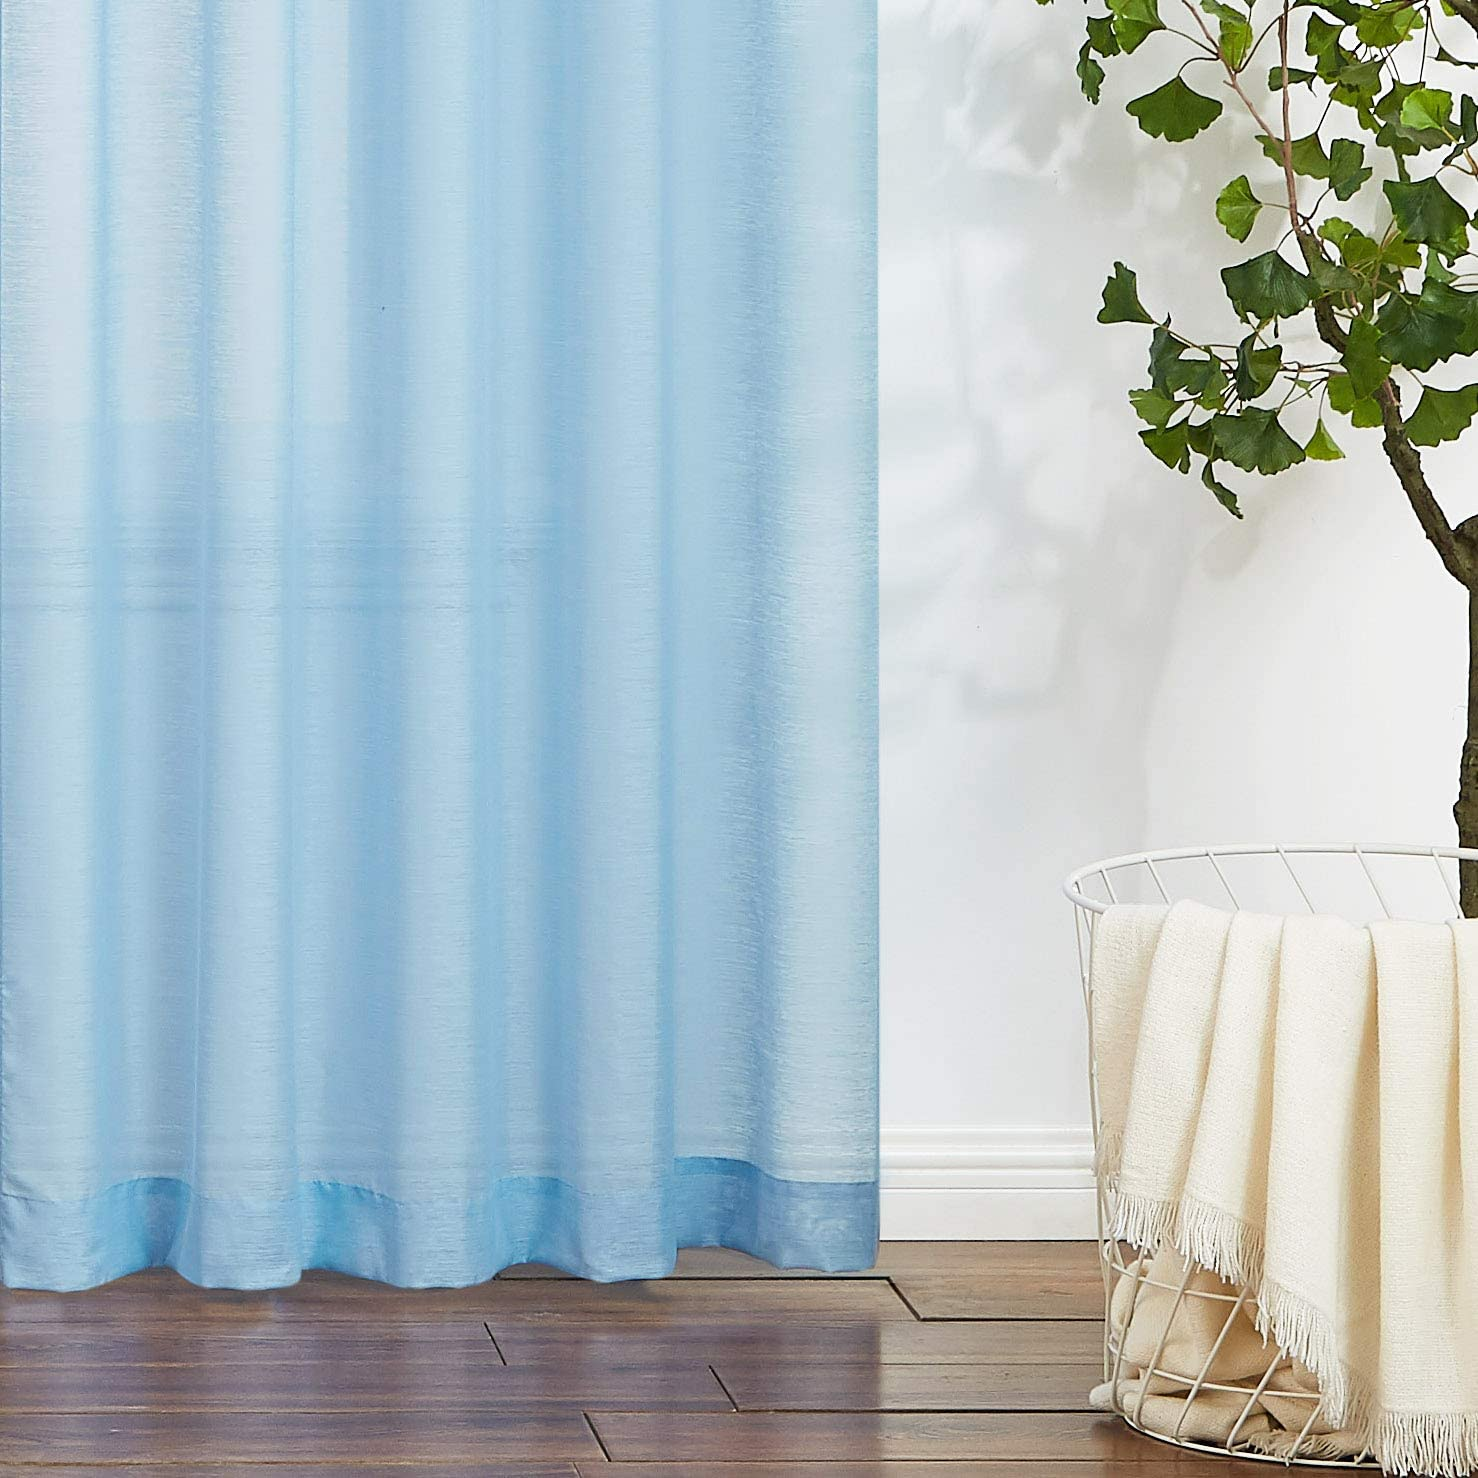 White Sheer Curtains 108 inches Long for Living Room Slub Textured Outdoor Curtains Semi-Sheer Window Drapers for Bedroom 52 w x 2Panels